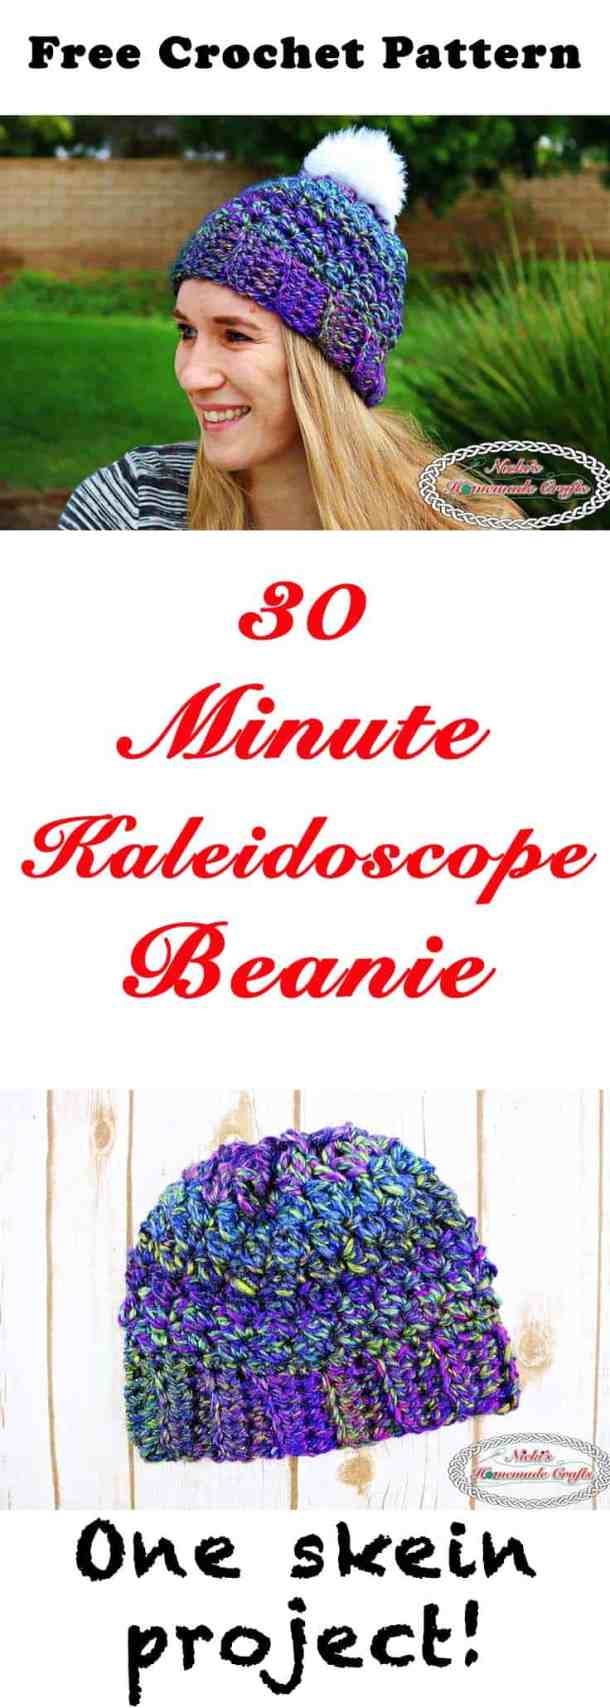 30 Minute Kaleidoscope Beanie - Free Crochet Pattern by Nicki's Homemade Crafts #crochet #freecrochetpattern #hat #beanie #pompom #30minutes #quick #easy #kaleidoscope